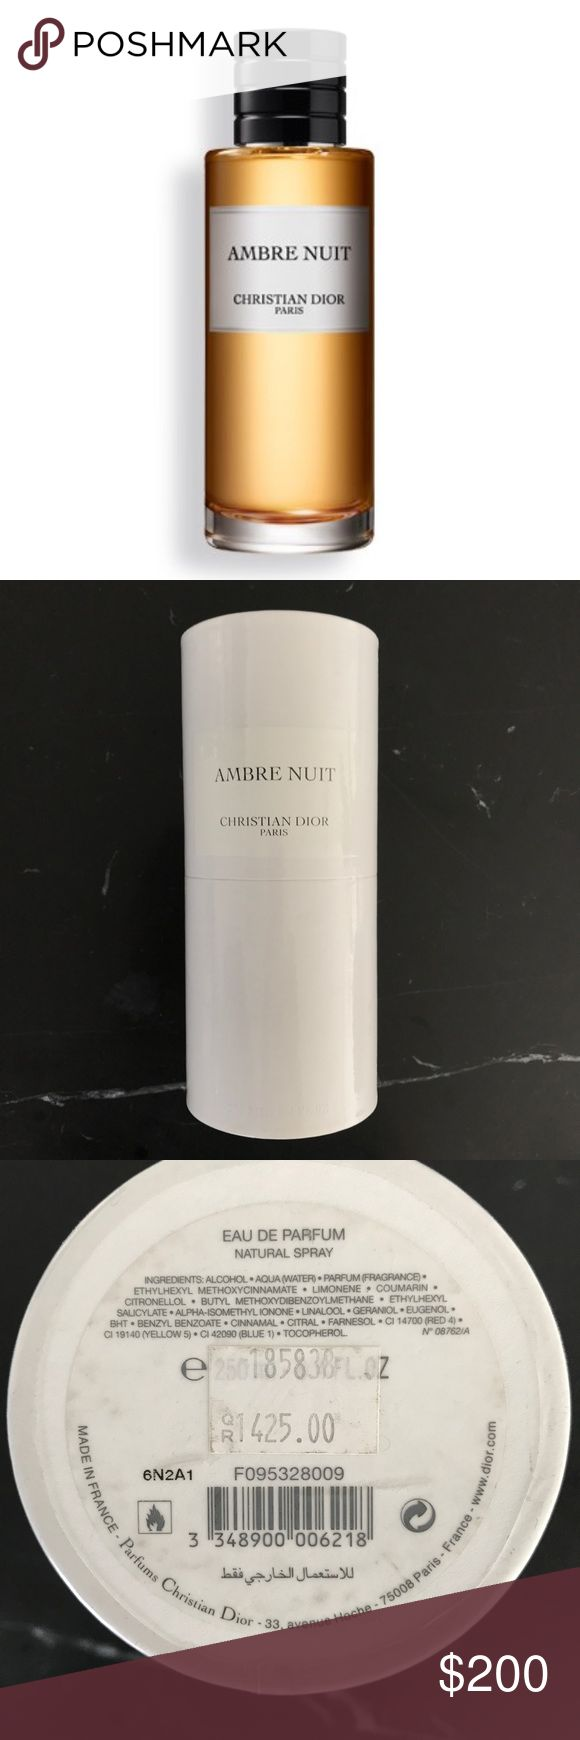 Ambre Nuit Dior Eau de Parfum Private Collection Beautiful, sensual, and characteristic Christian Dior fragrance from the private collection, sealed packaging, 8.5 oz (250ml) Dior Other